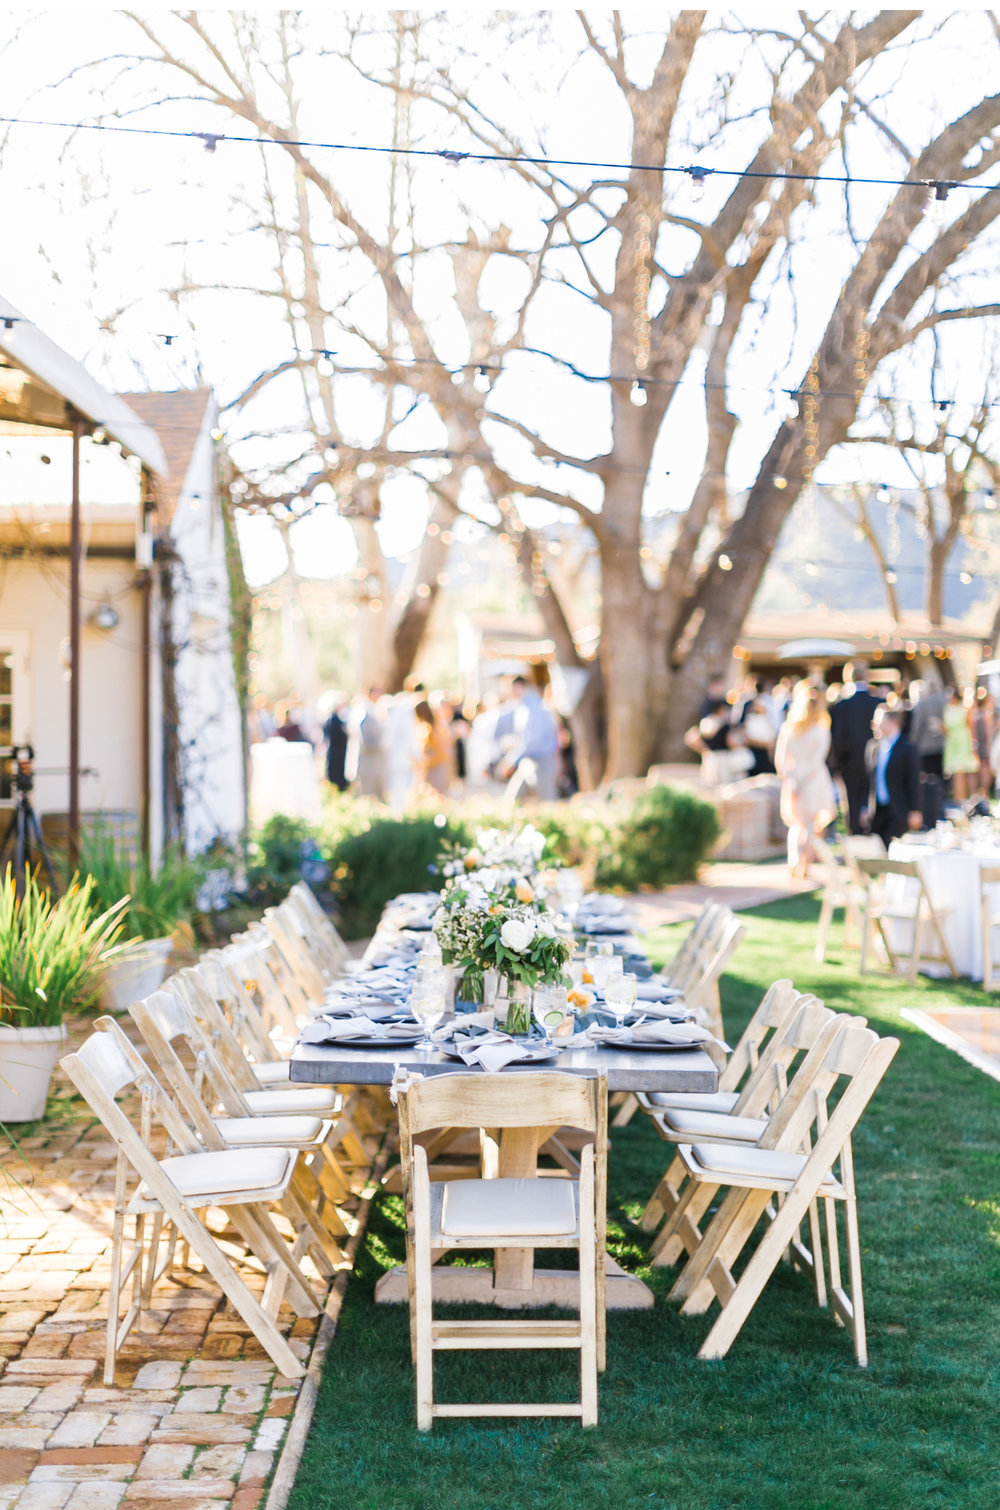 Triunfo-Creek-Malibu-Wedding-Natalie-Schutt-Photography-Couture-Events-Style-Me-Pretty_13.jpg